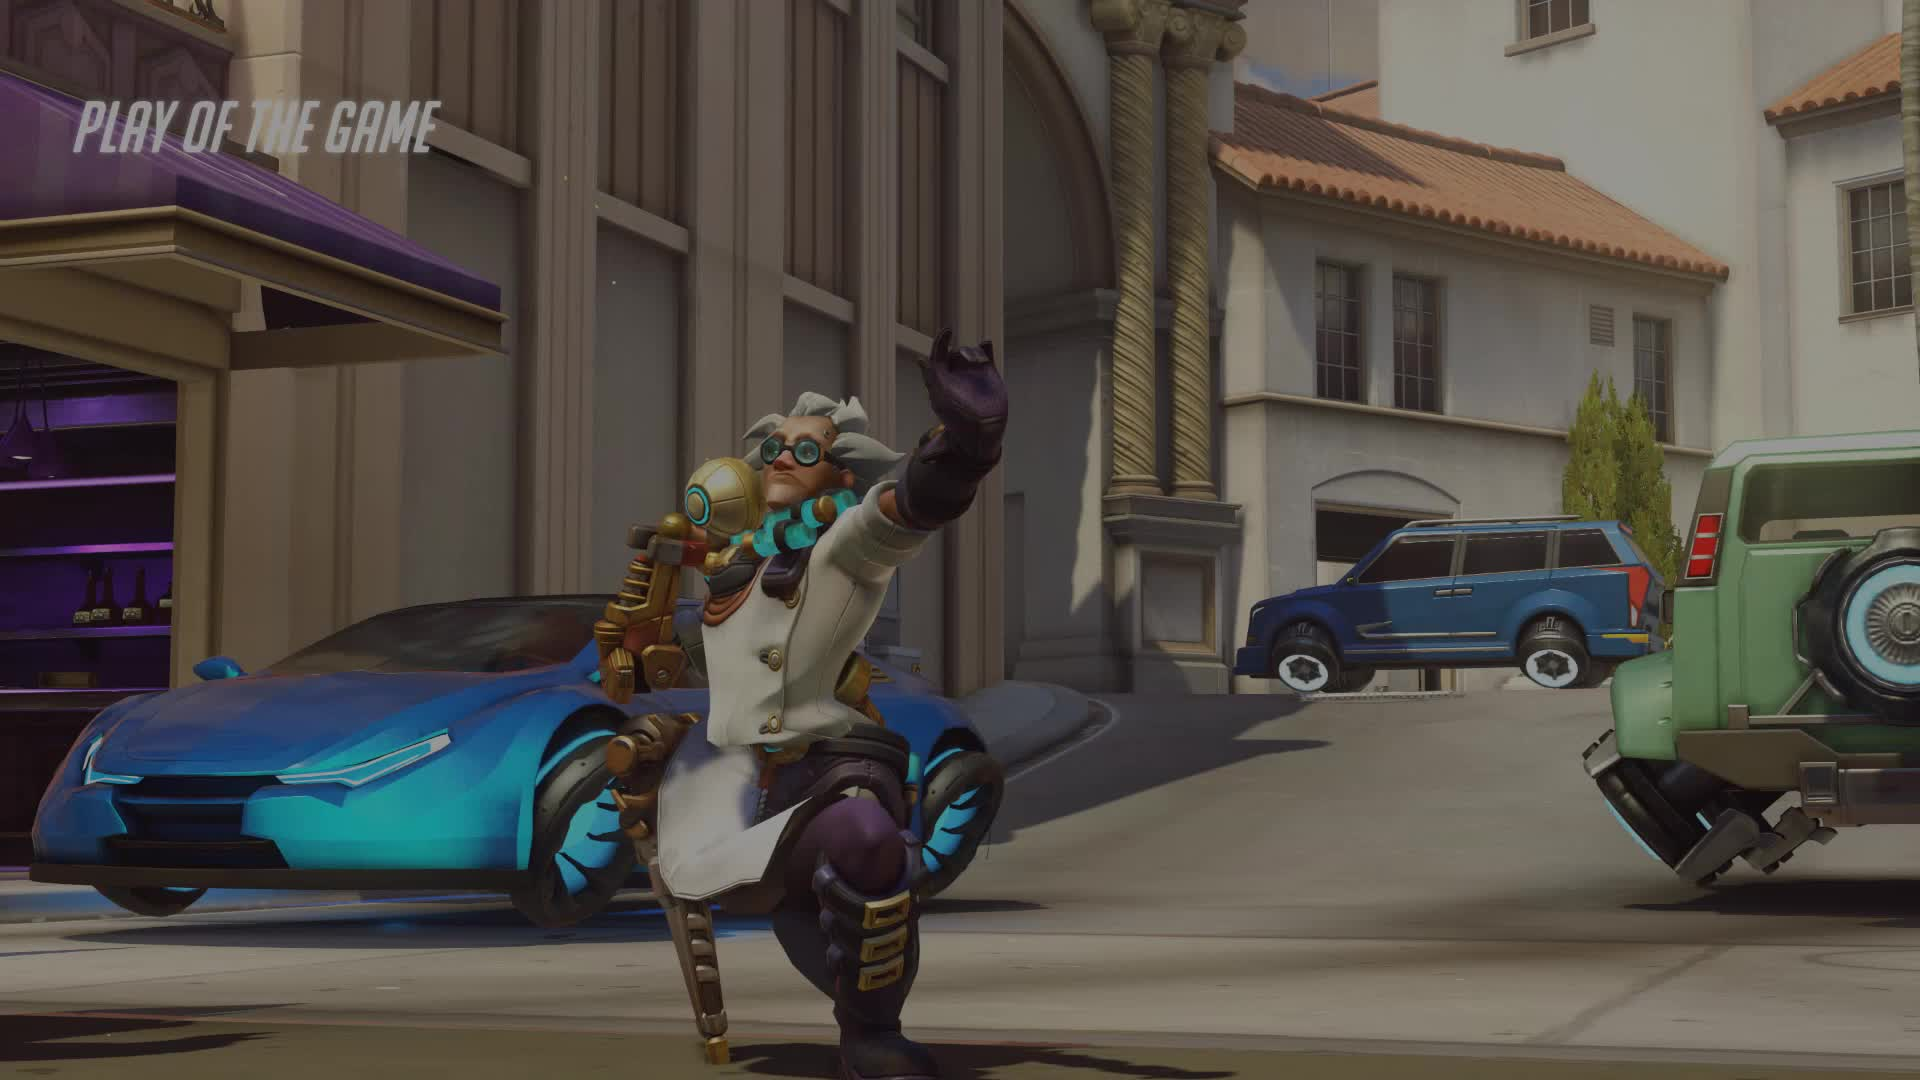 overwatch, Overwatch: How did I get this ULT off? GIFs